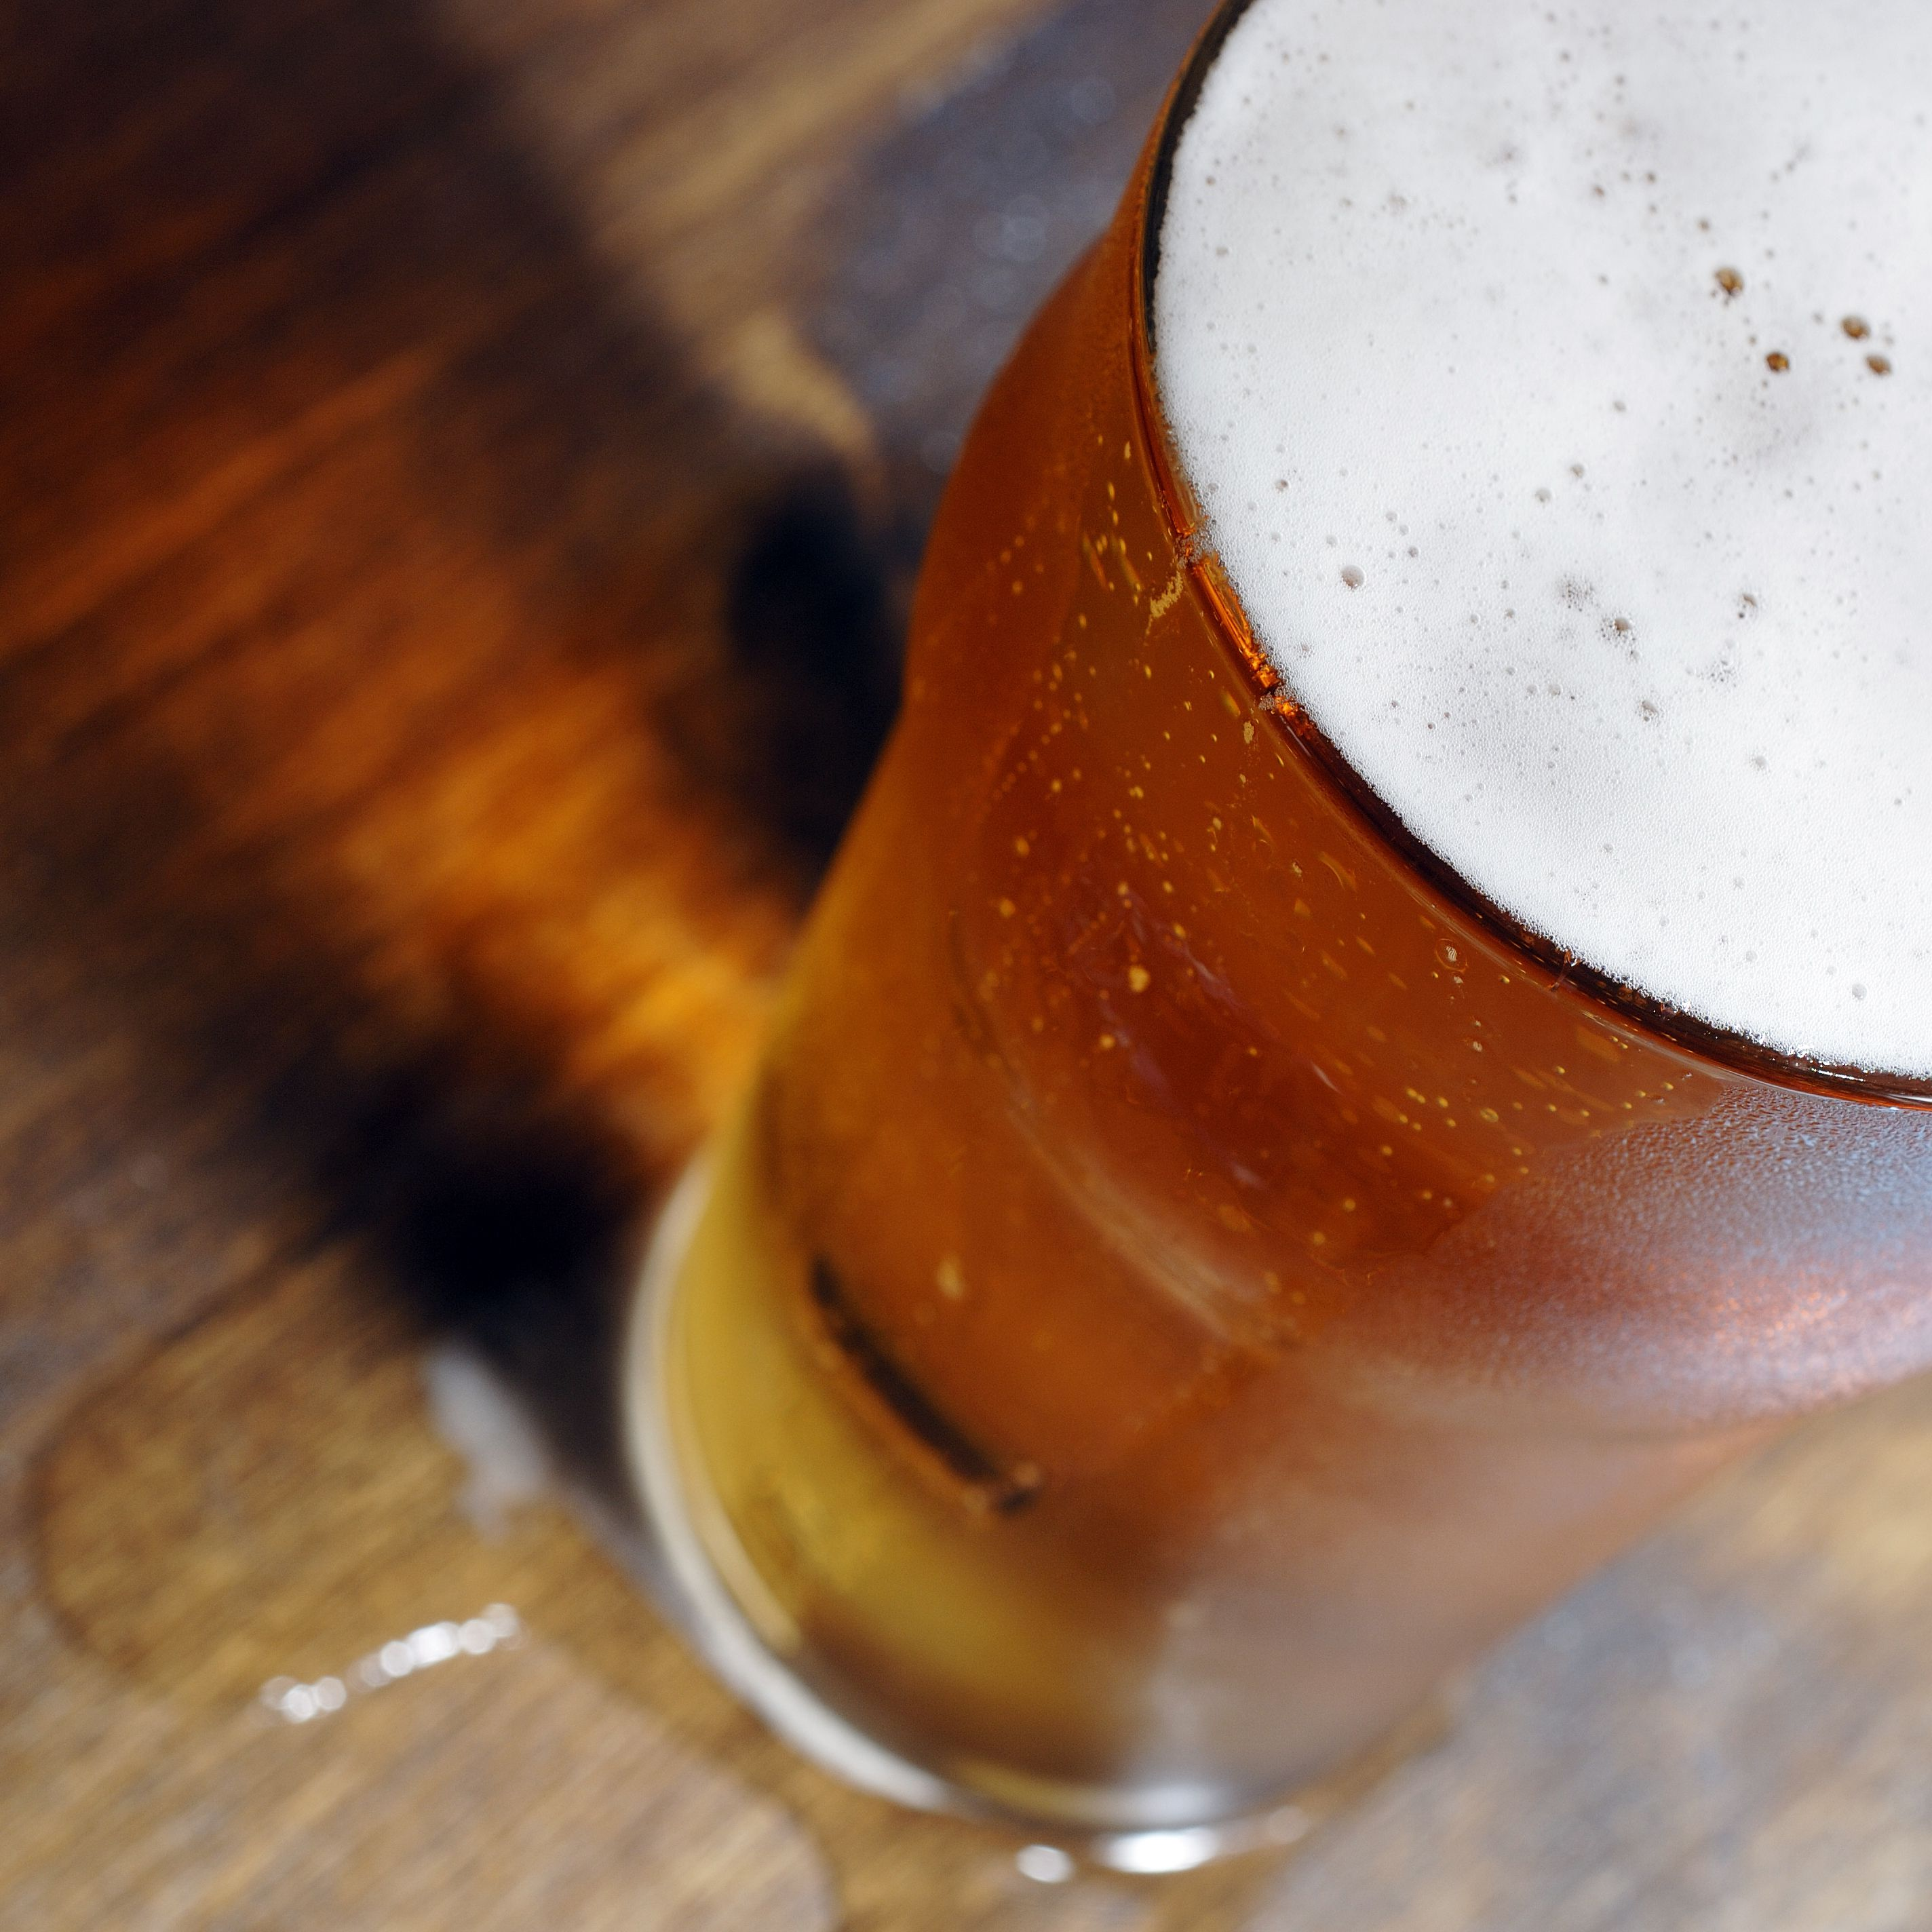 How to Remove Beer and Liquor Stains From Clothes and More